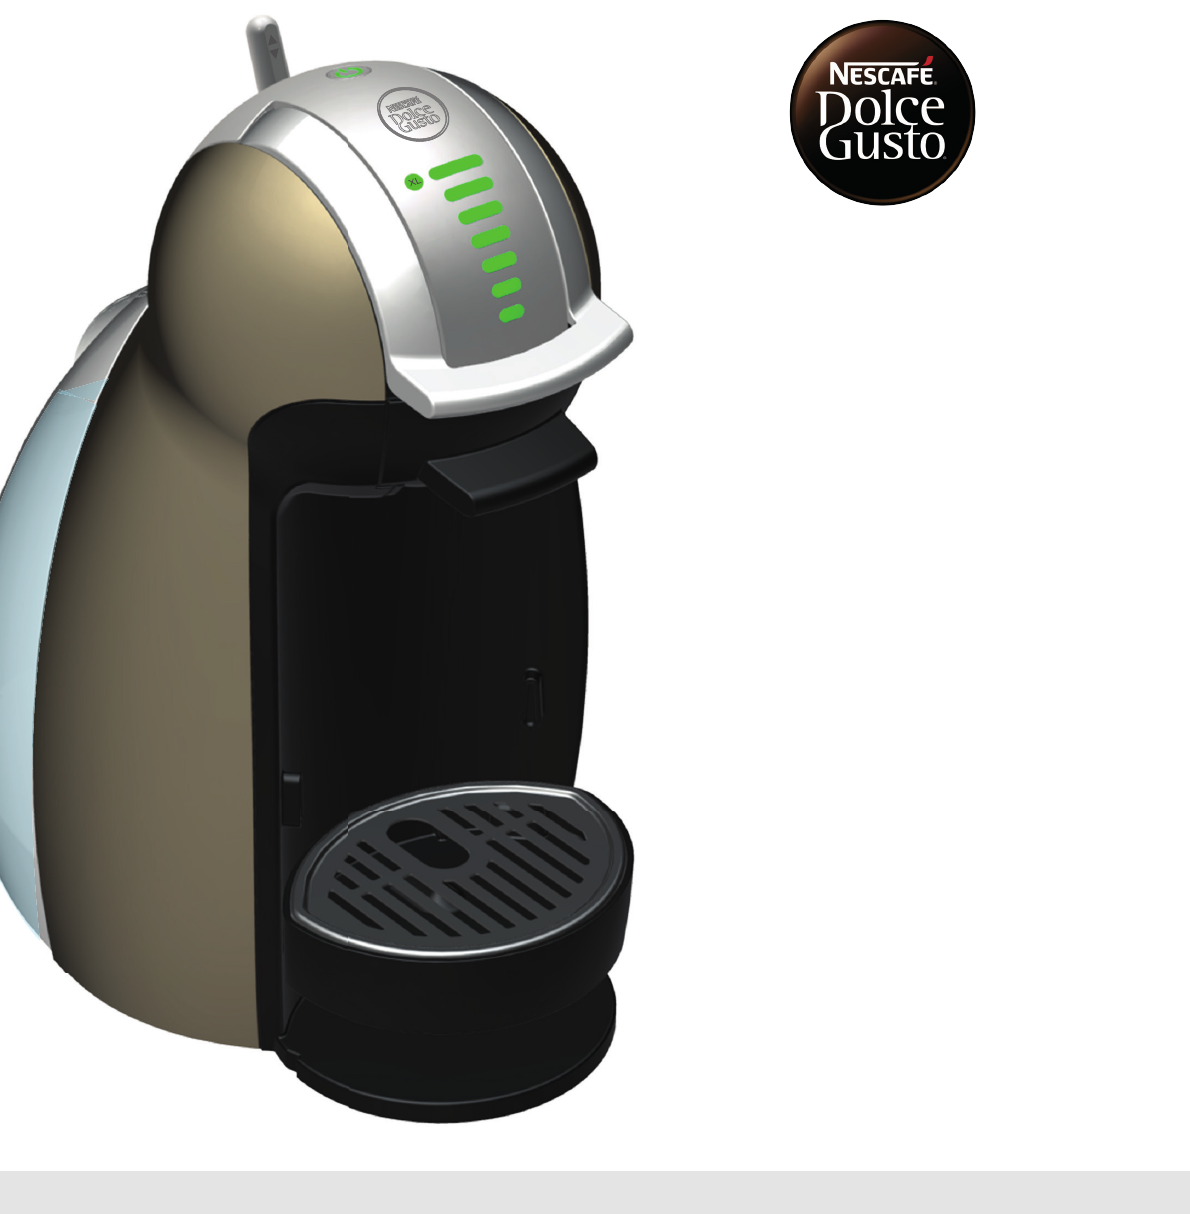 bedienungsanleitung krups kp 160t dolce gusto genio 2. Black Bedroom Furniture Sets. Home Design Ideas